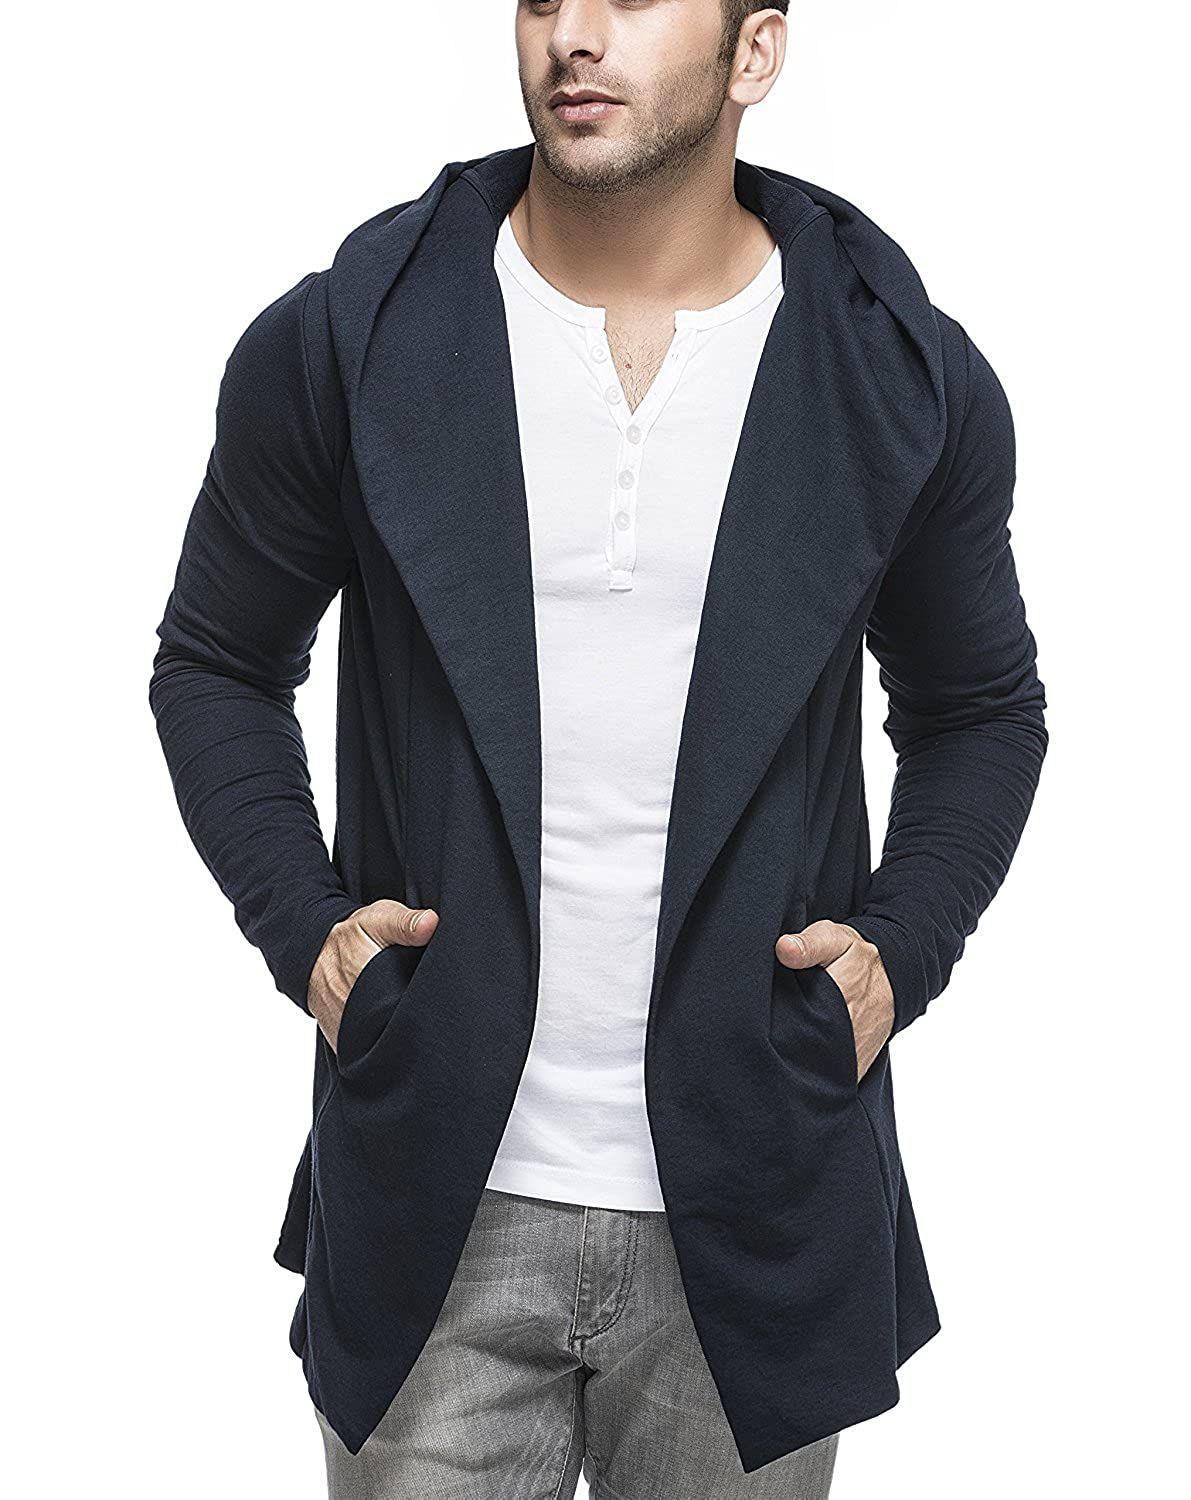 Tinted Men's Cotton Blend Cardigan